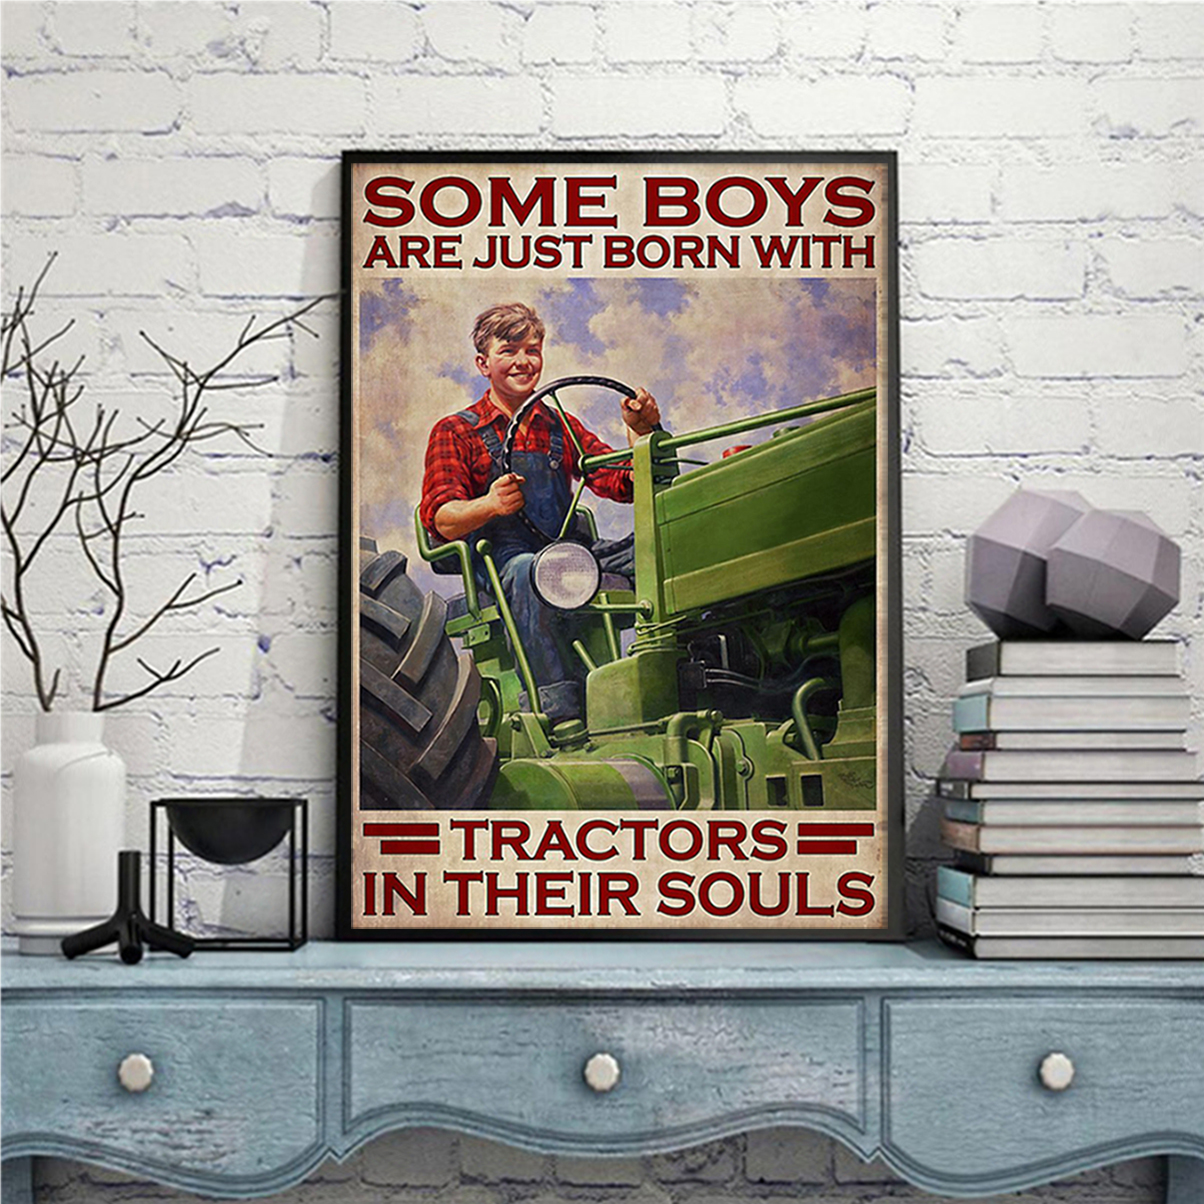 Some boys are just born with tractors in their souls poster A2